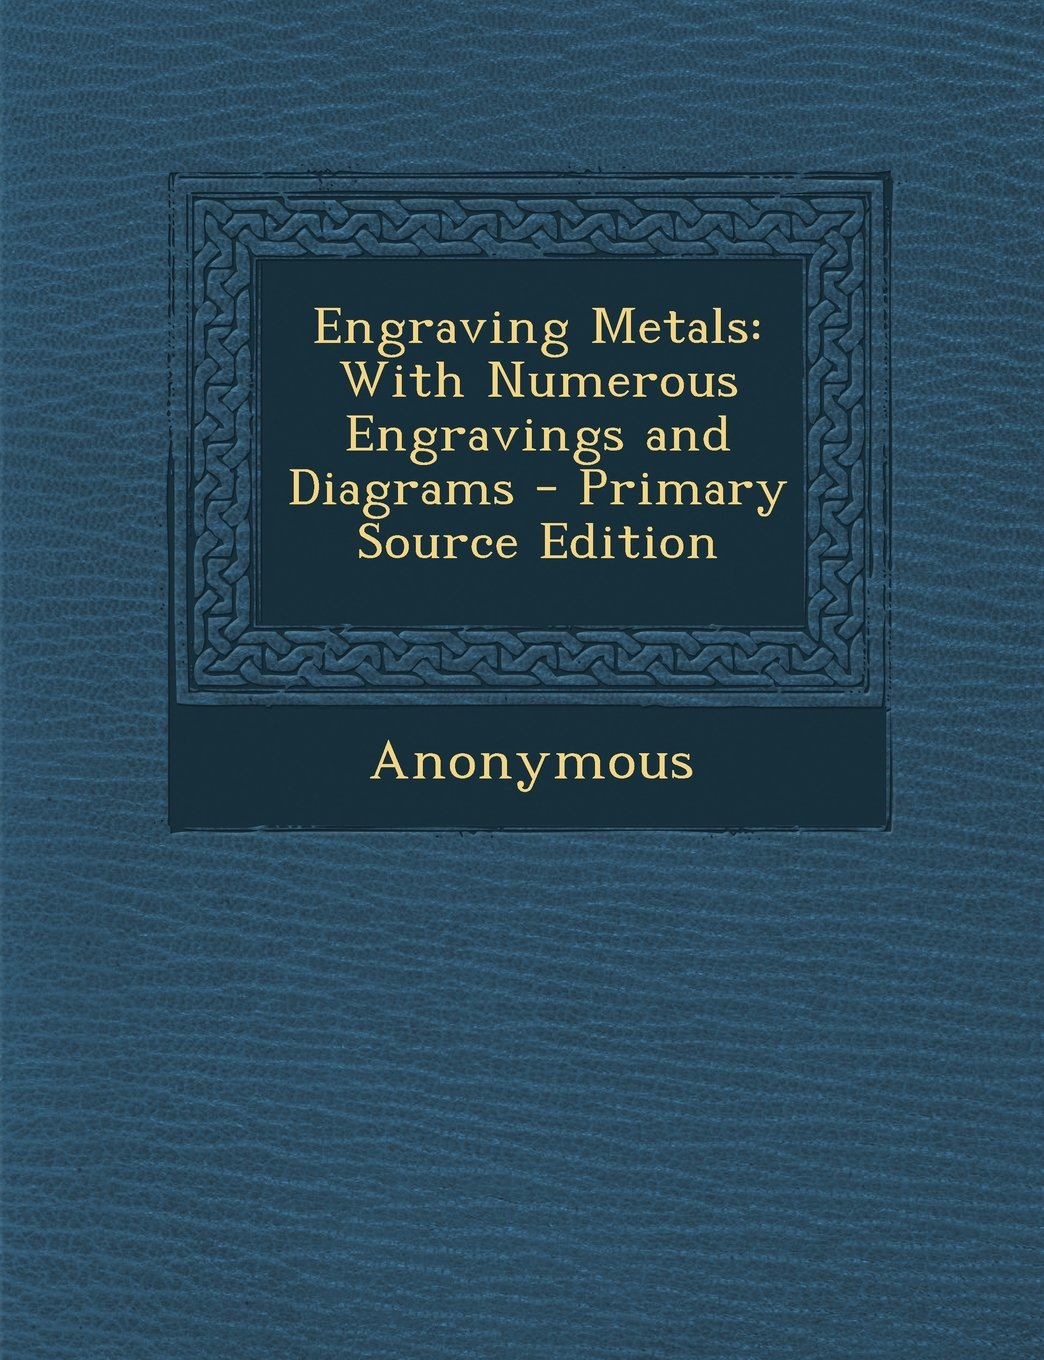 Engraving Metals: With Numerous Engravings and Diagrams - Primary Source Edition pdf epub